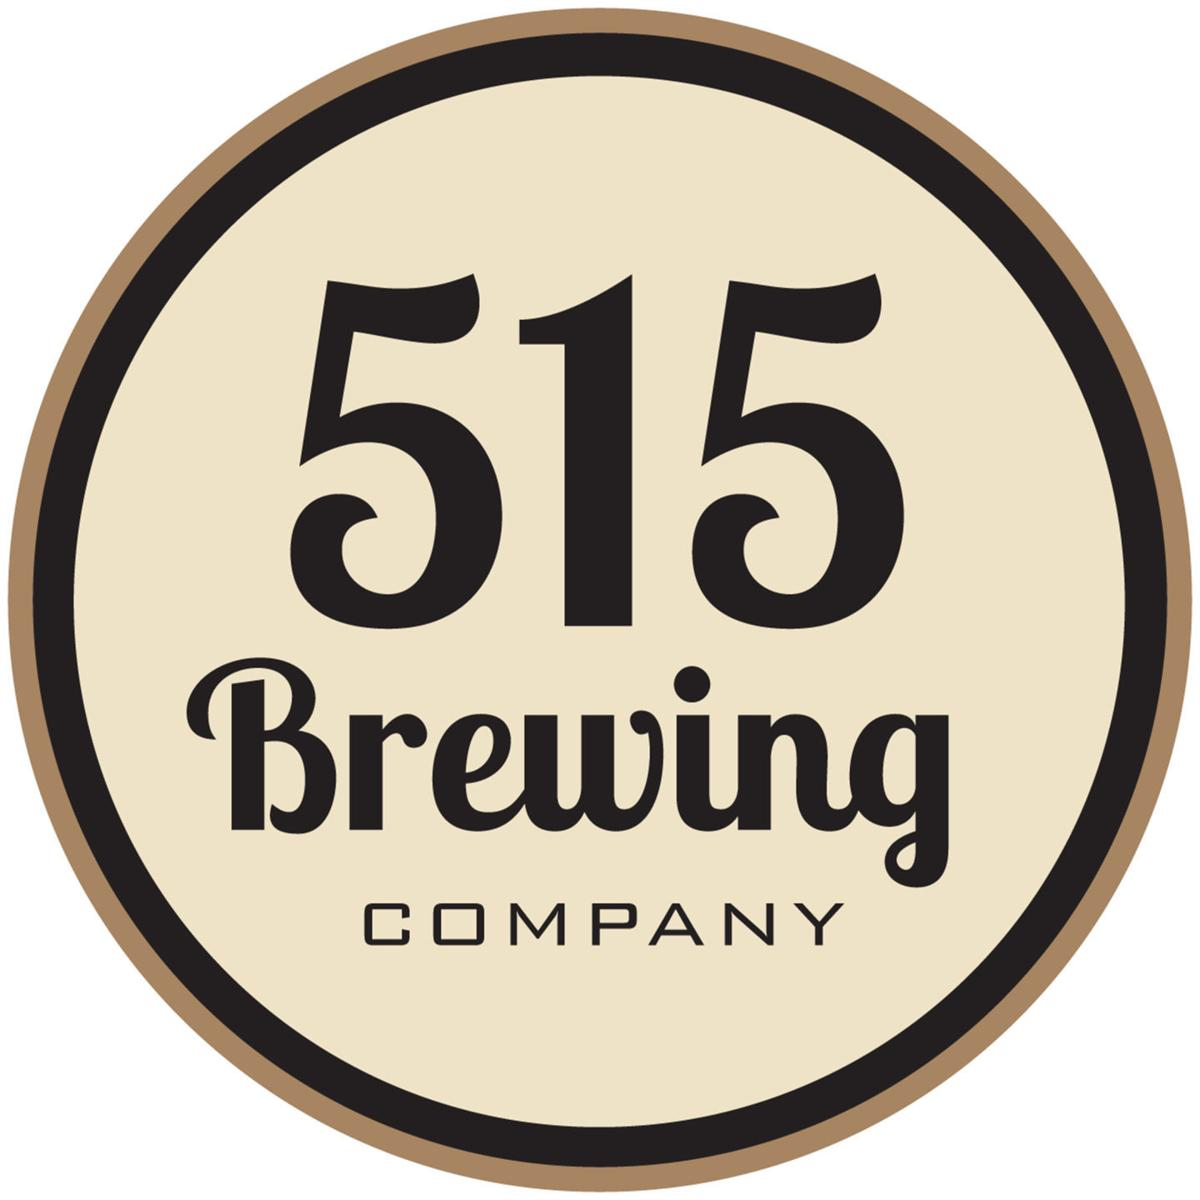 515 Brewing Company logo